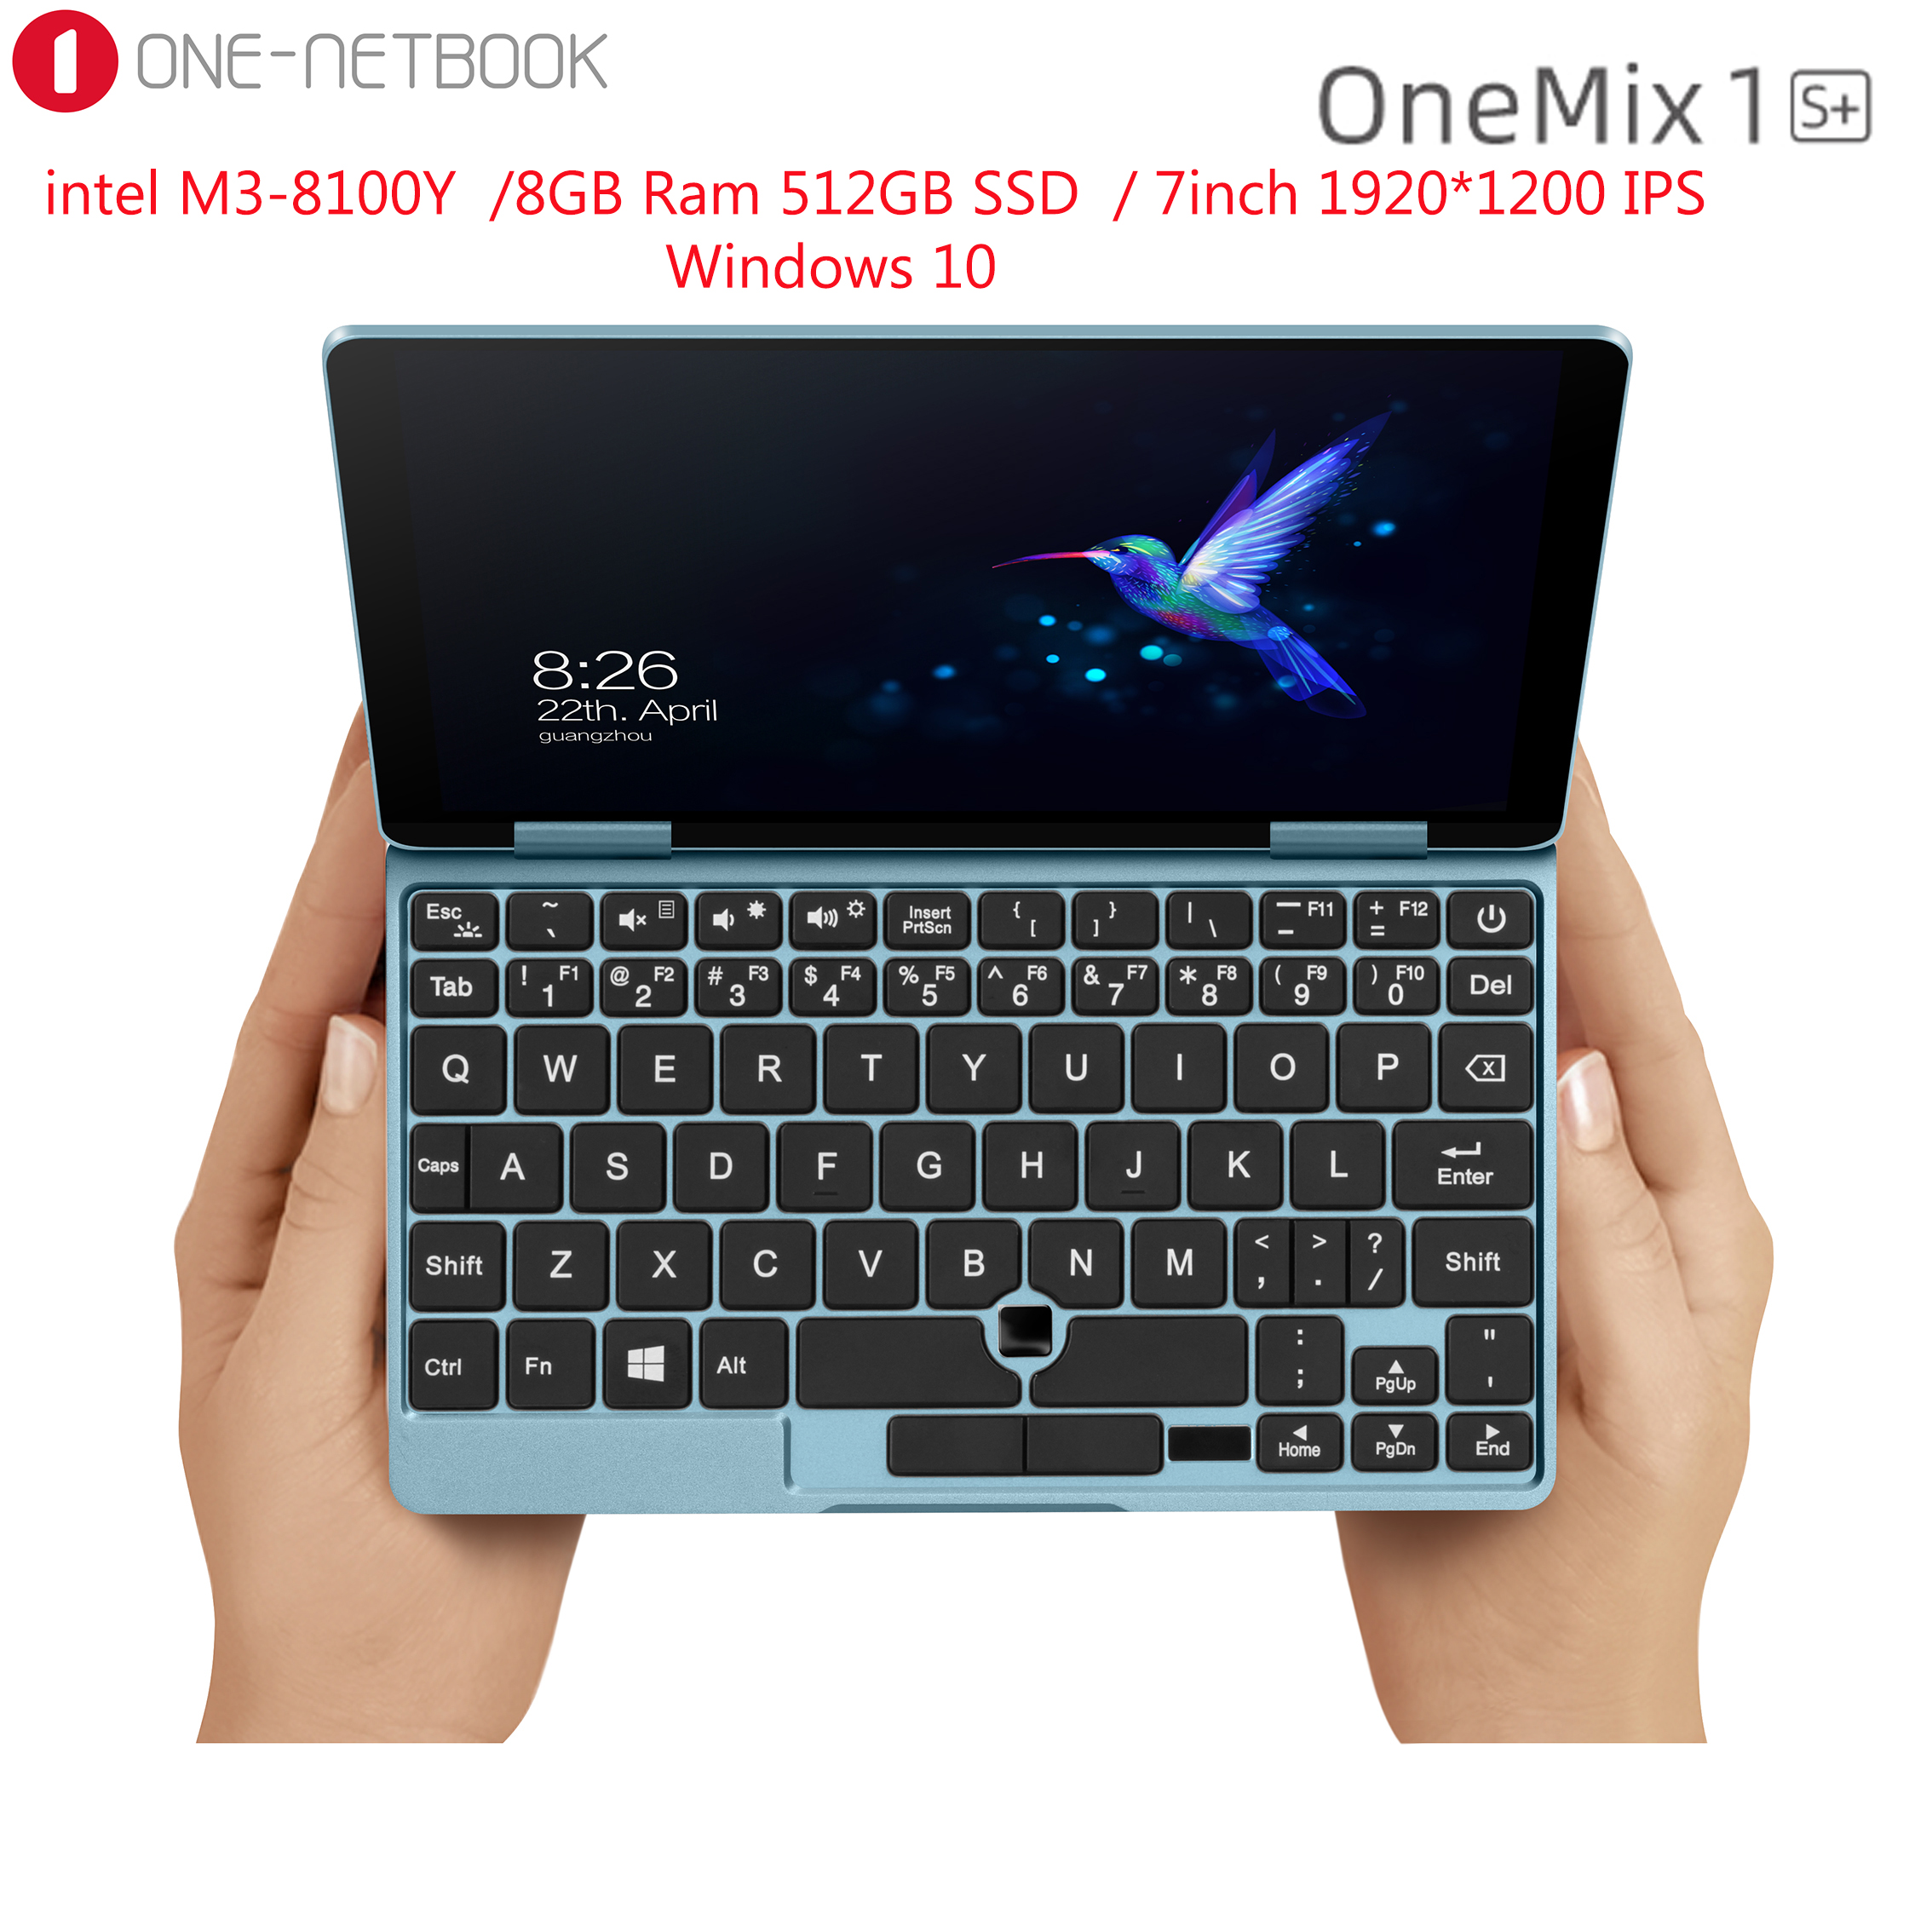 7 <font><b>Inch</b></font> 1920*1200 IPS Mini <font><b>Laptop</b></font> One Netbook Onemix 1s+ 8GB Ram 256GB PCIe SSD Pocket PC Intel Core M3-8100Y Windows 10 image